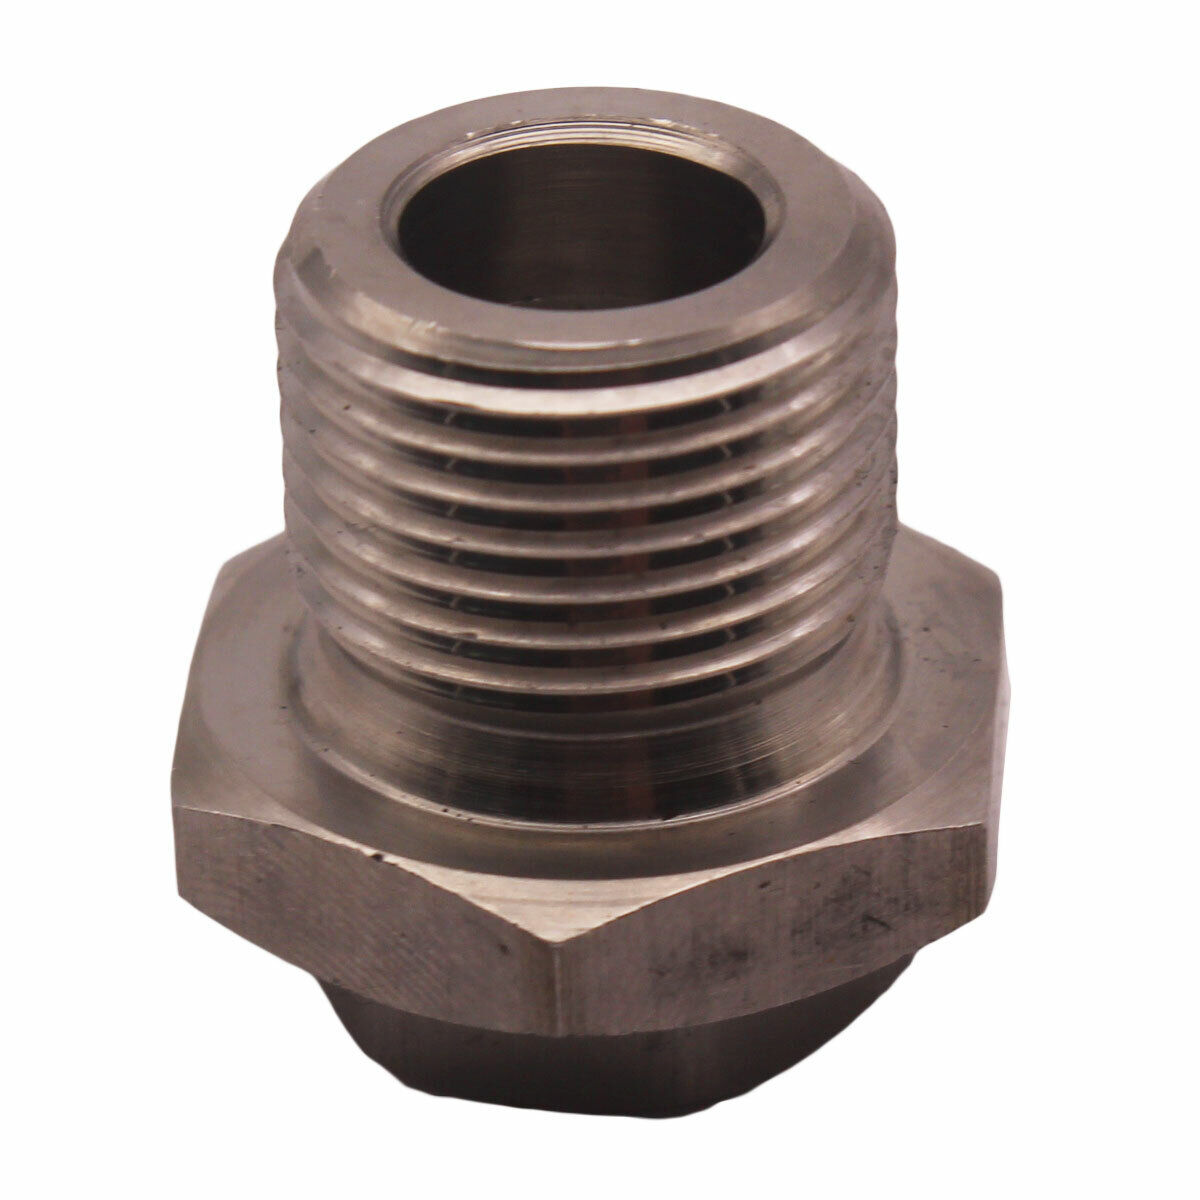 New O2 Bung Reducer Adapter M18 x 1.50 to M12 x 1.25 For Silvia S13//14 SR20DET